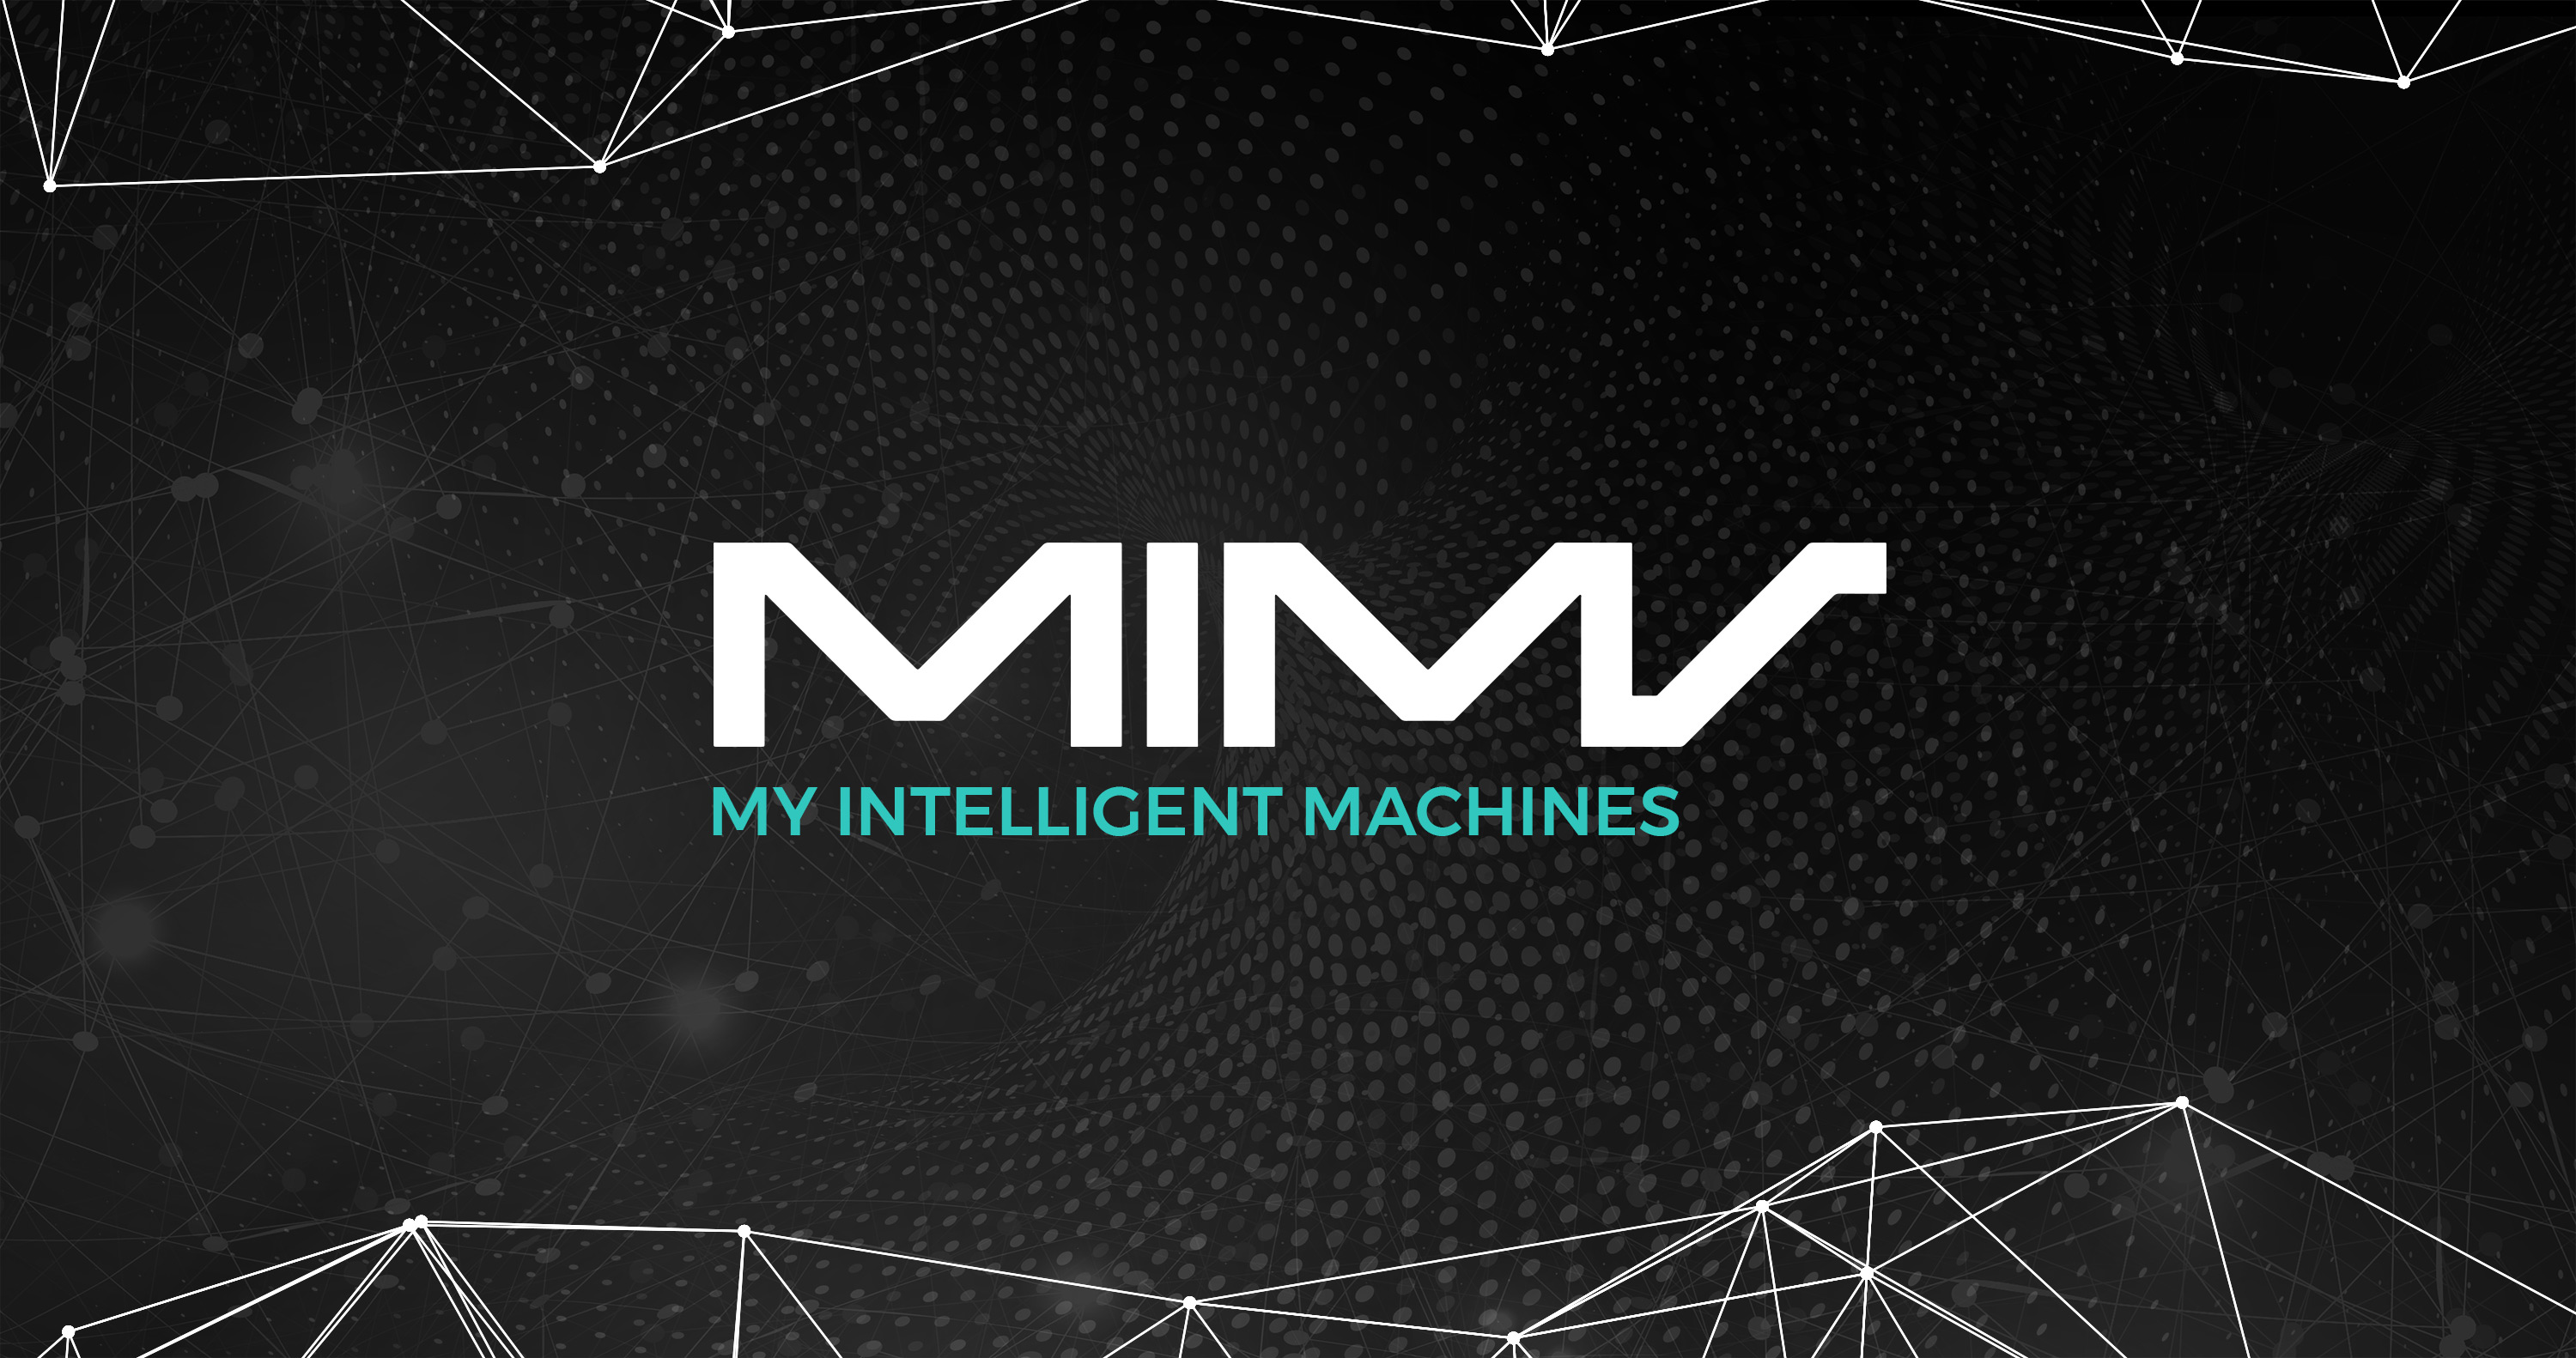 My Intelligent Machines - Mims - Présentation - Founder Fuel 2017